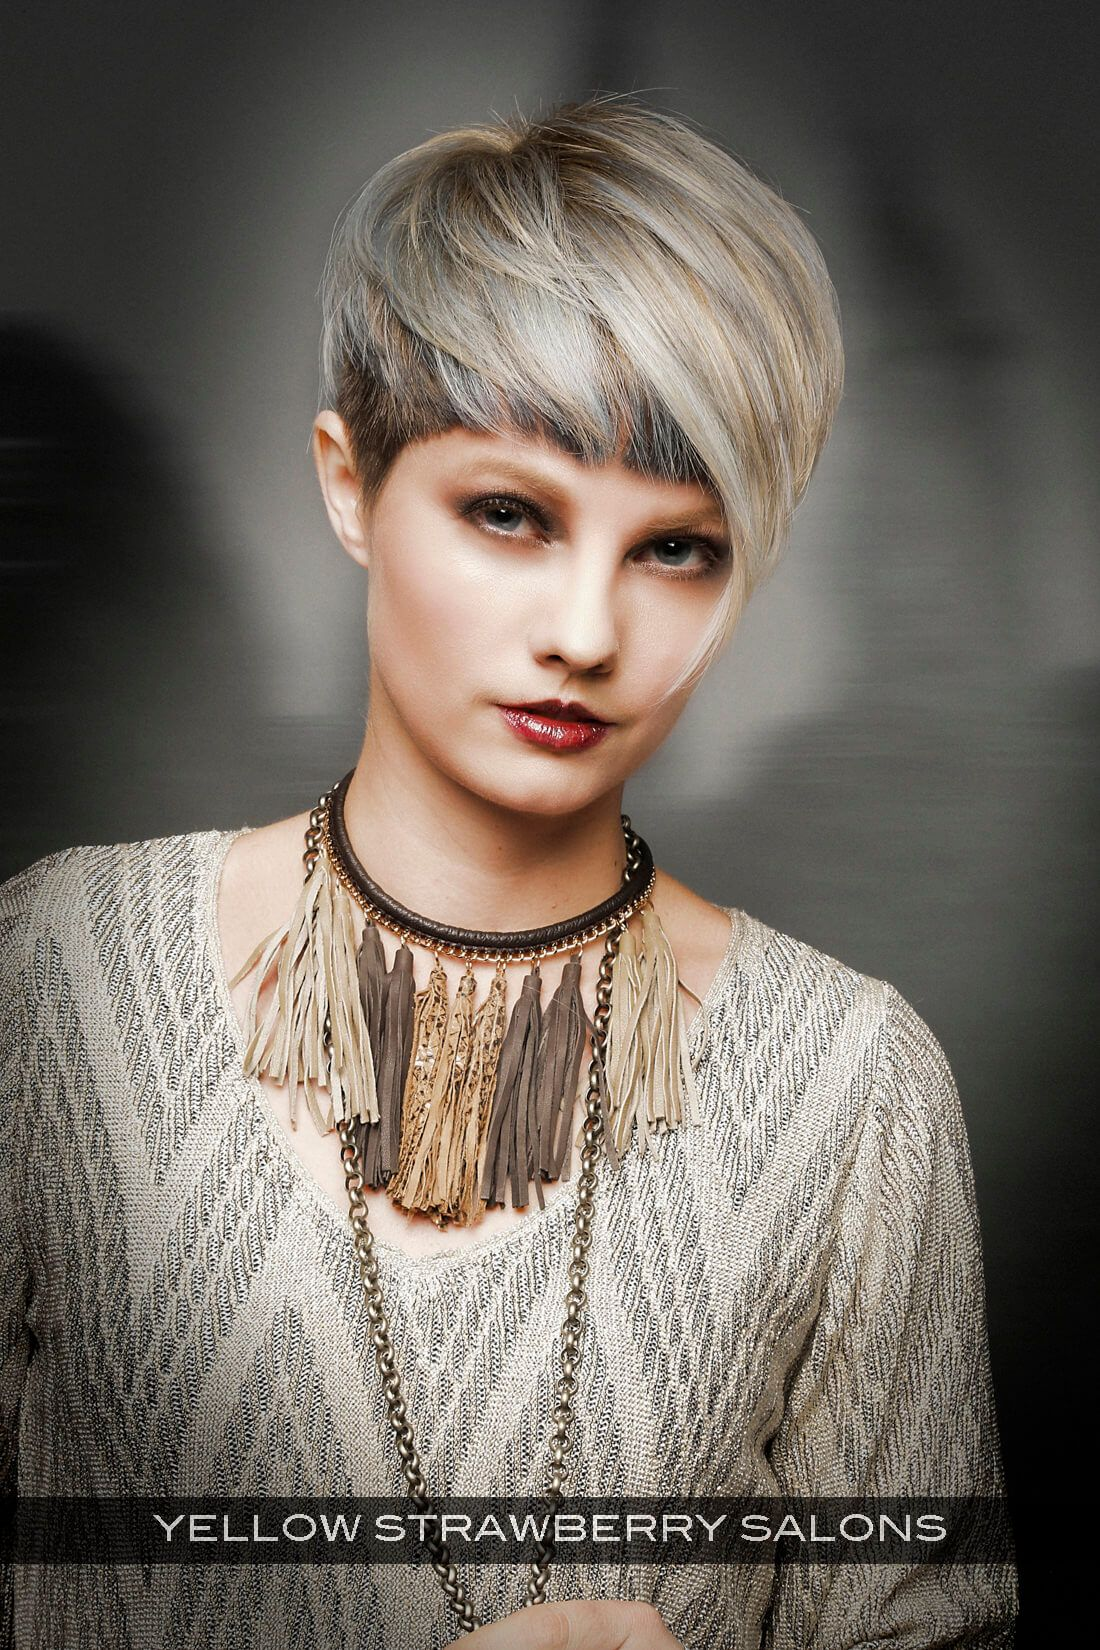 Cropped hairstyle with halo fringe avant garde cut colour